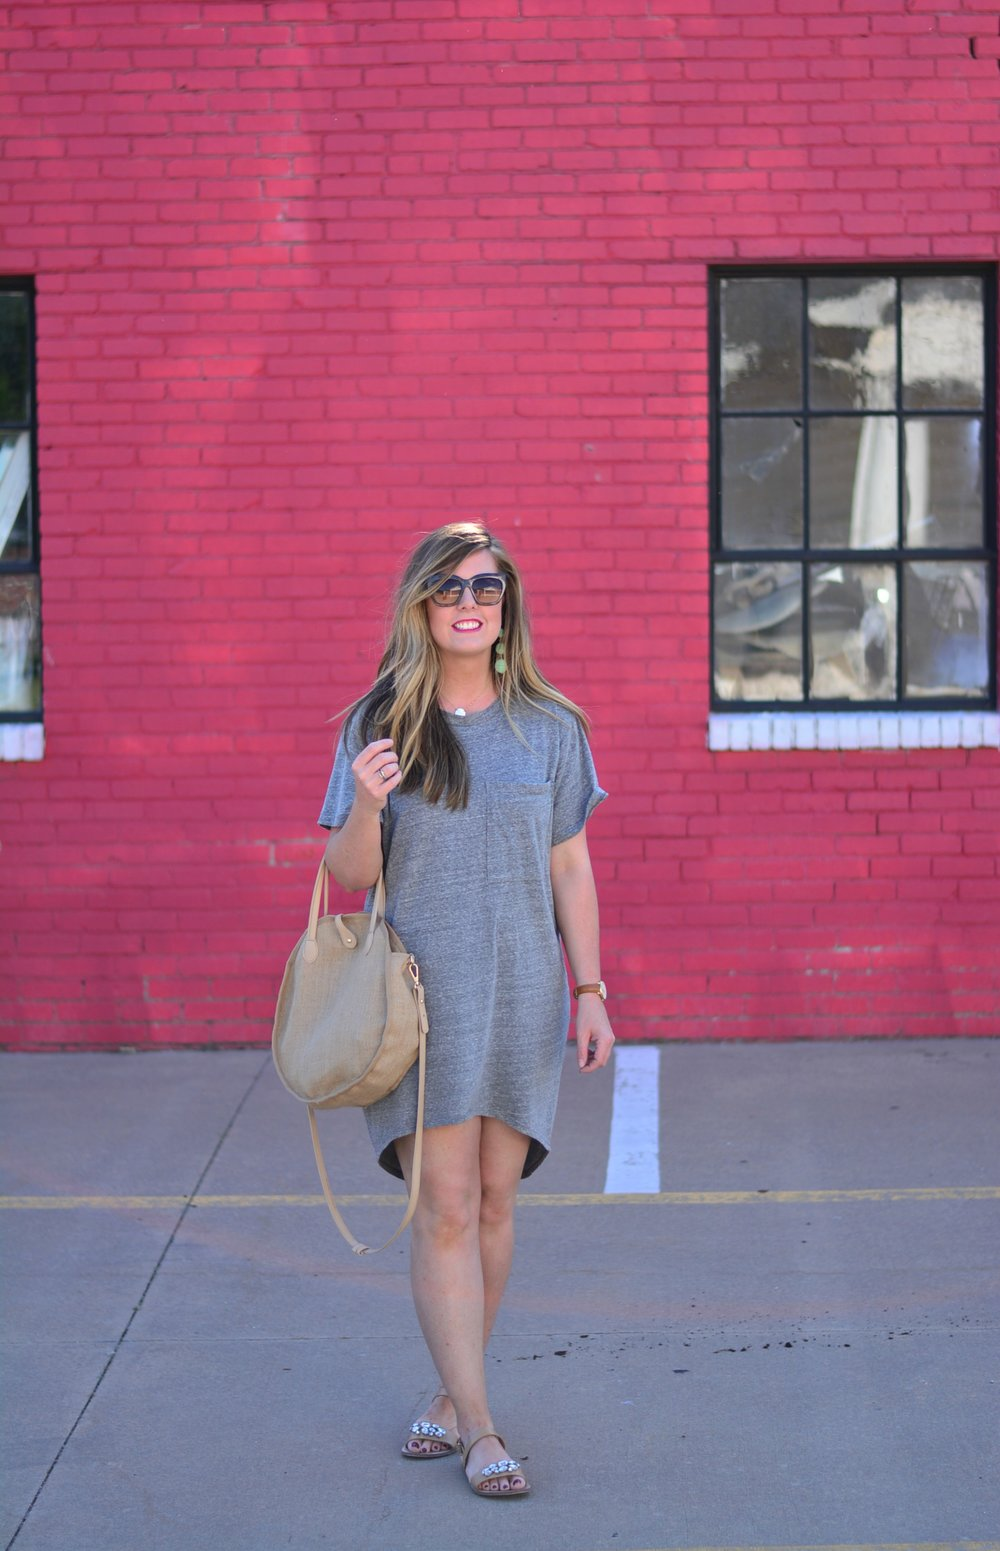 Tshirt dress for spring